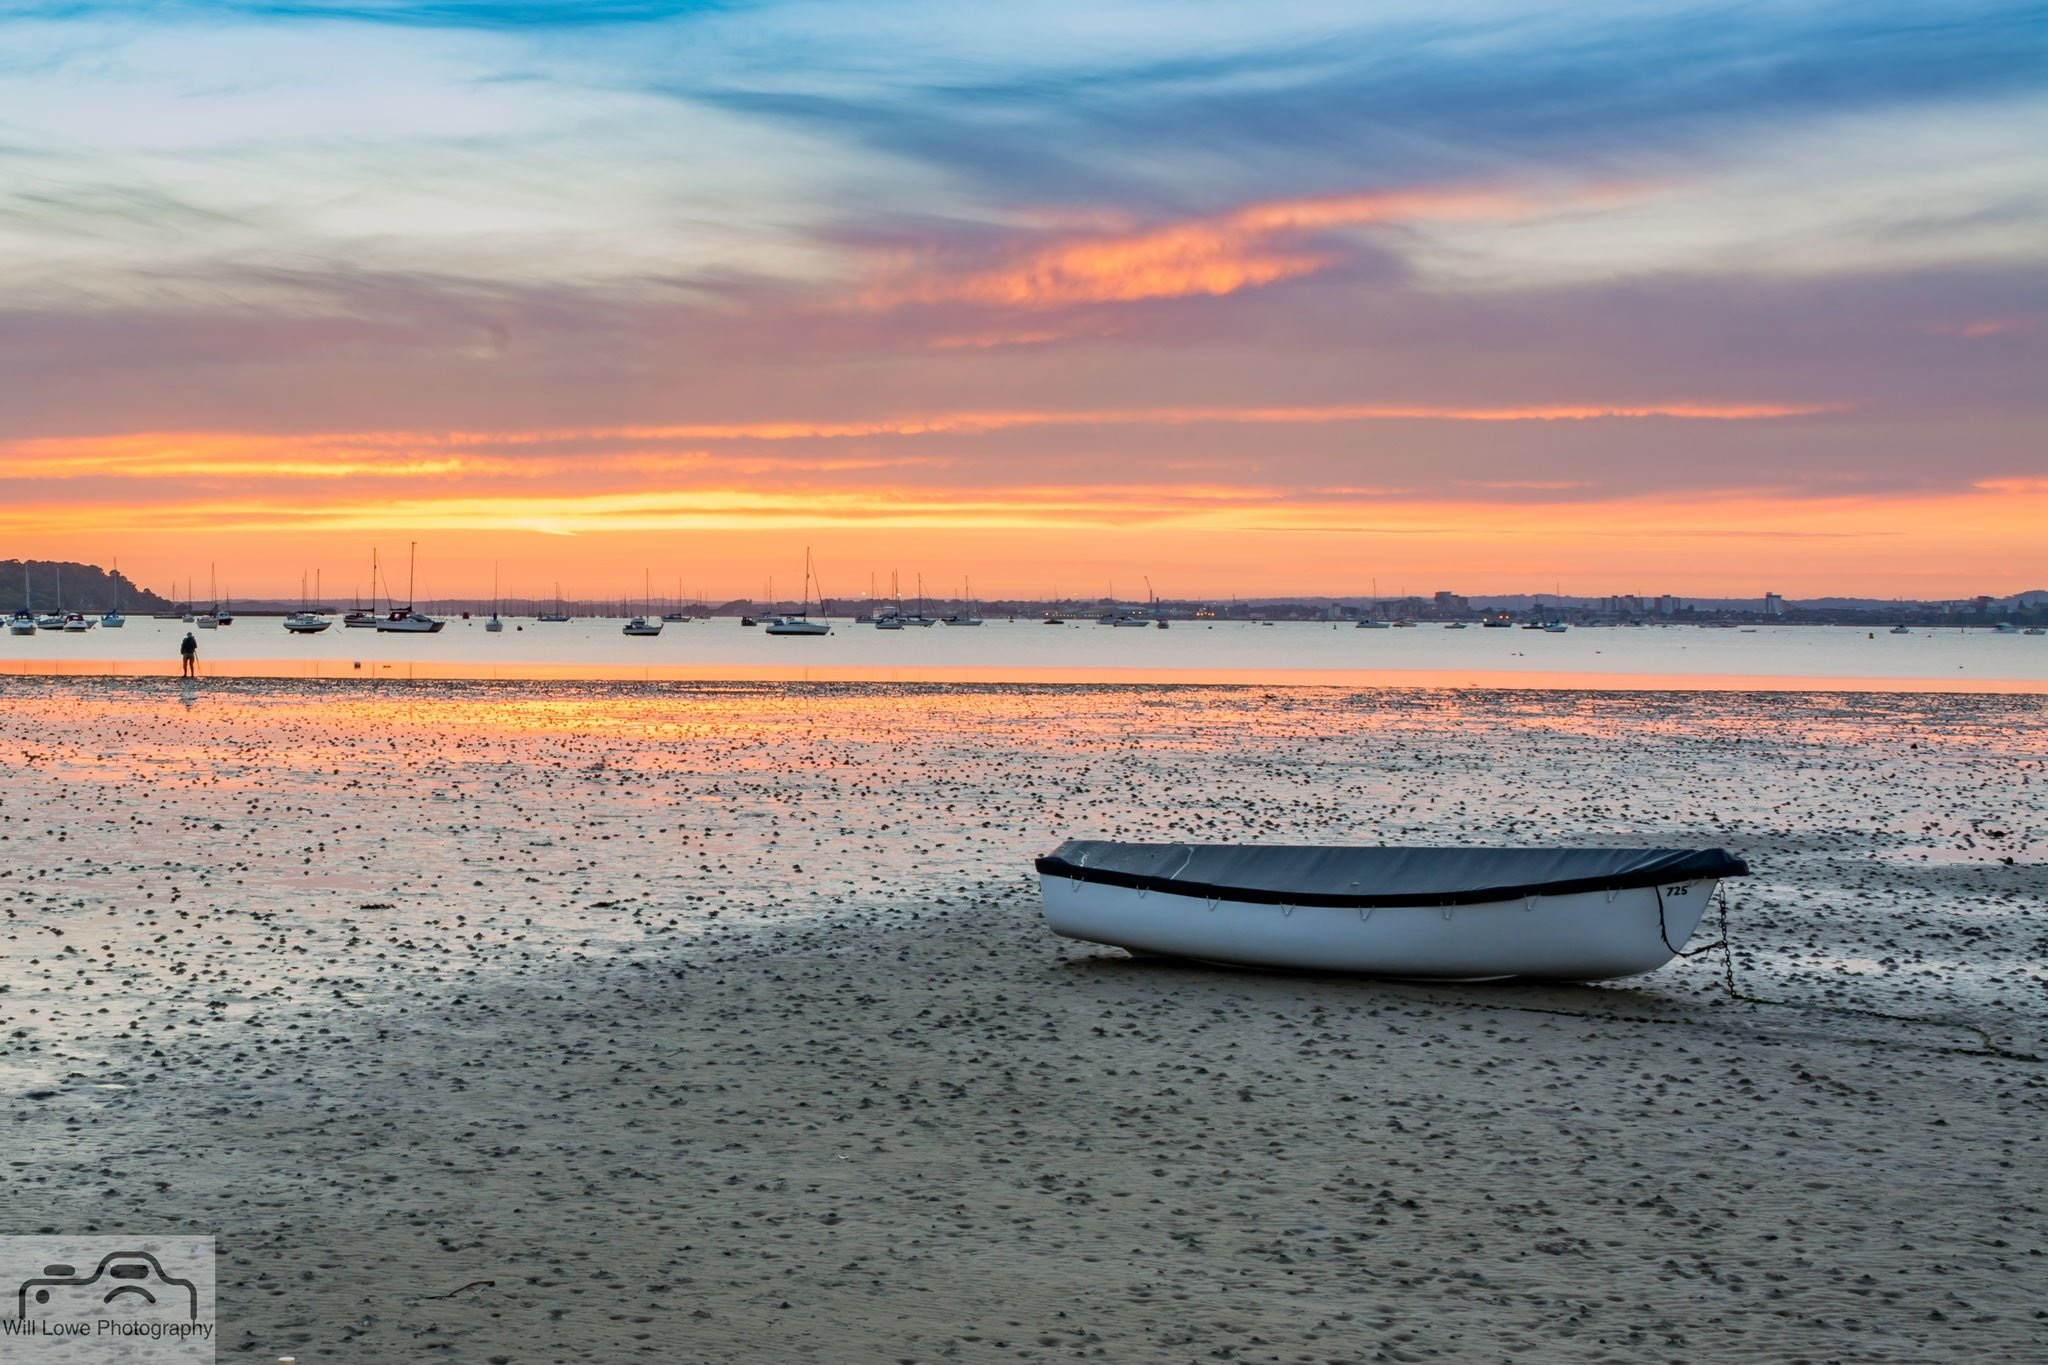 Beached at Sunset  by Will Lowe Photography